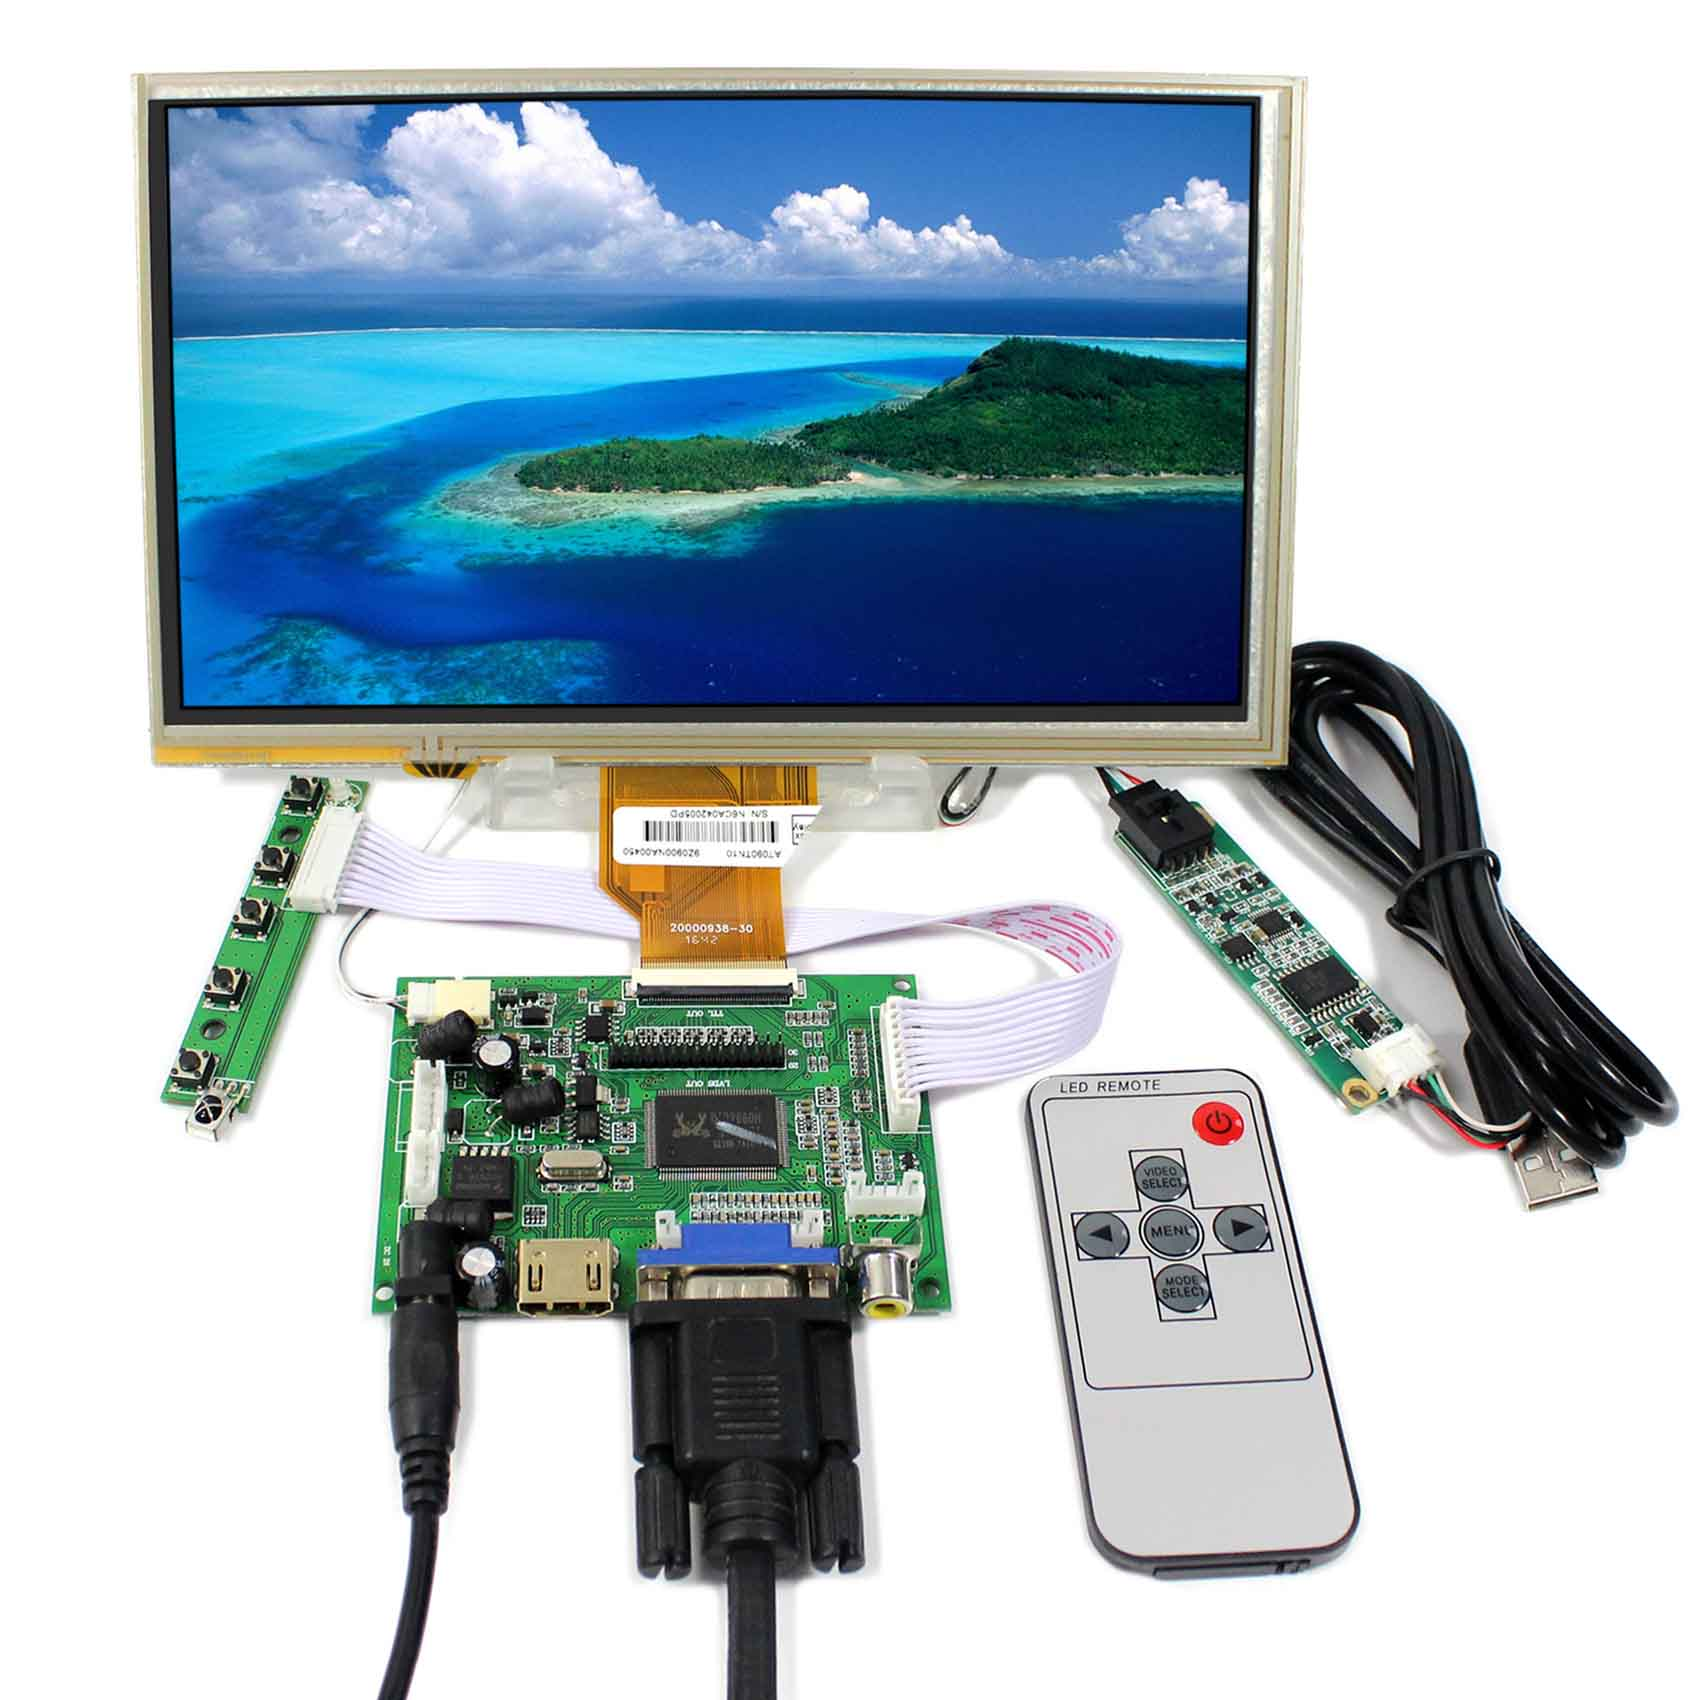 HDMI VGA 2AV LCD Controller Board+9 AT090TN10 AT090TN12 800x480 LCD Screen With Touch Panel aneng pressure transmitter pressure transducer sensor 0 10bar 9 32vdc g1 4 4 20ma 0 5